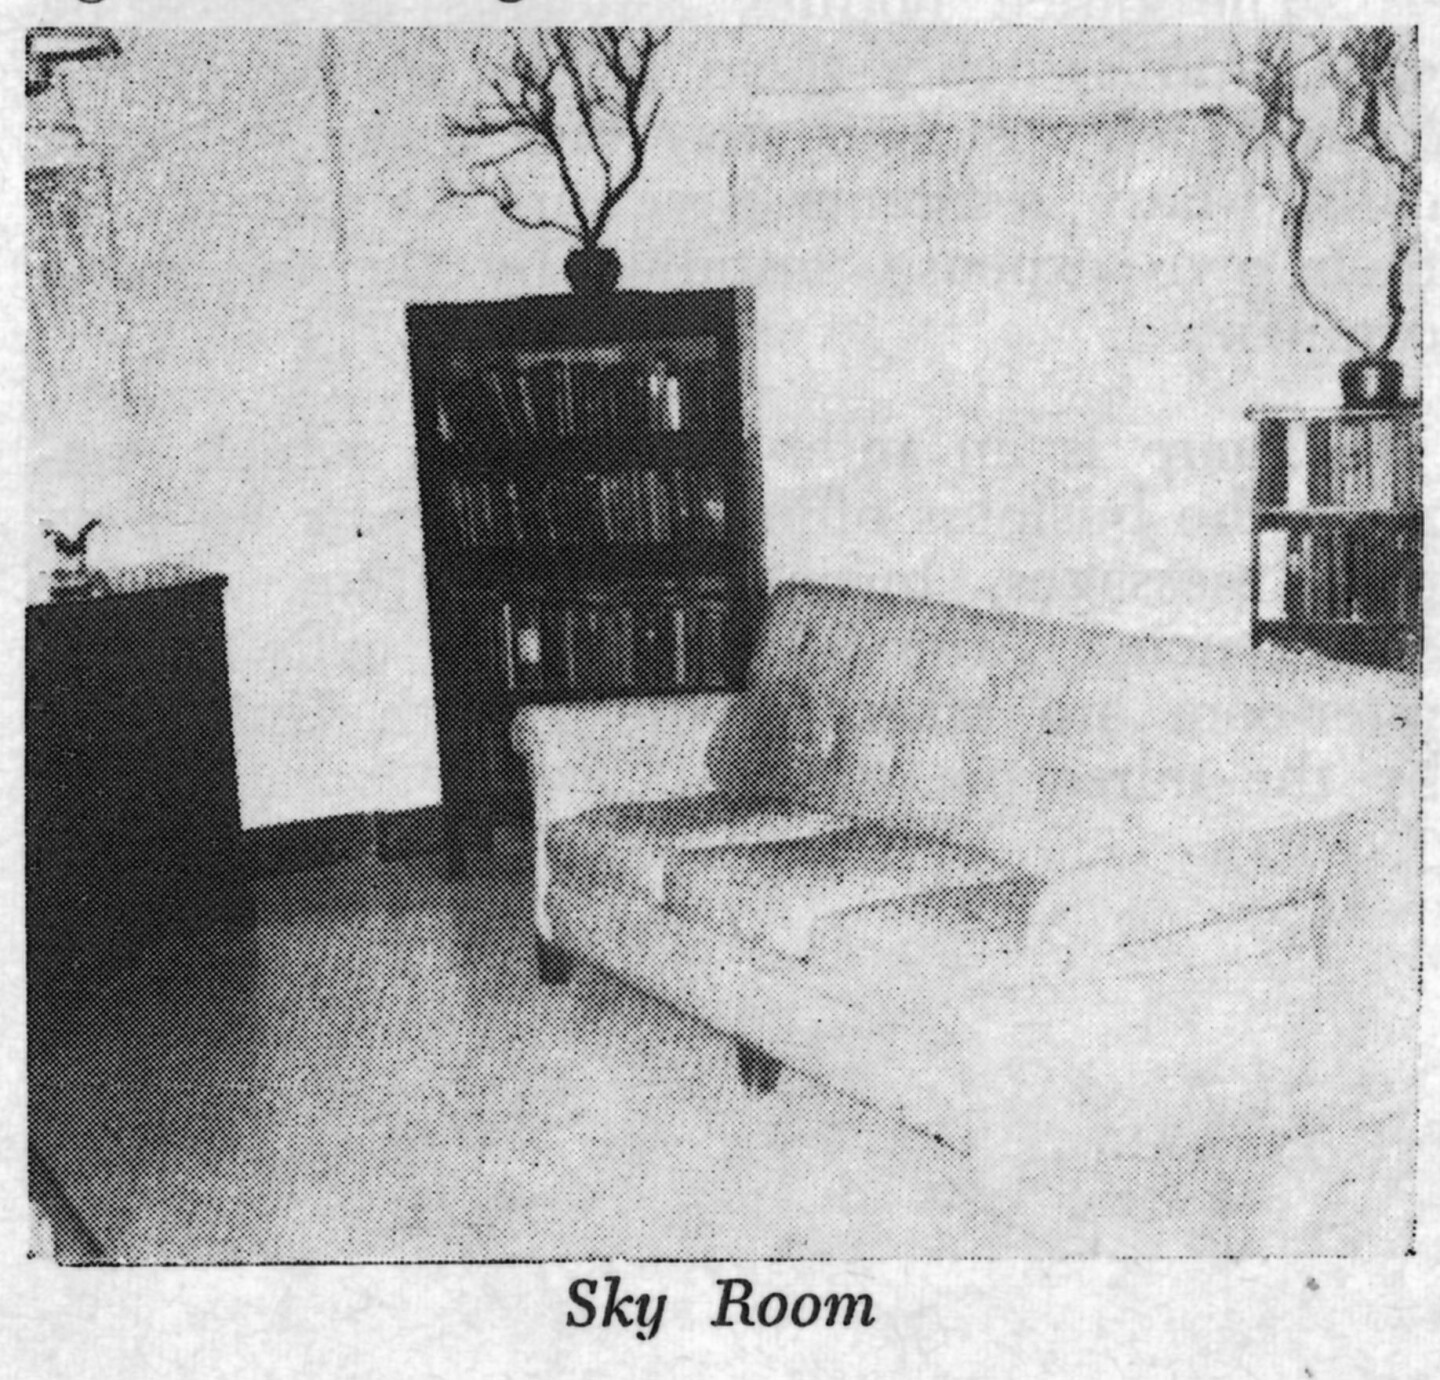 A black and white photo of a lounge at the Woman's Christian Temperance Union Home. There is a large couch and a bookshelf topped with a decorative tree.